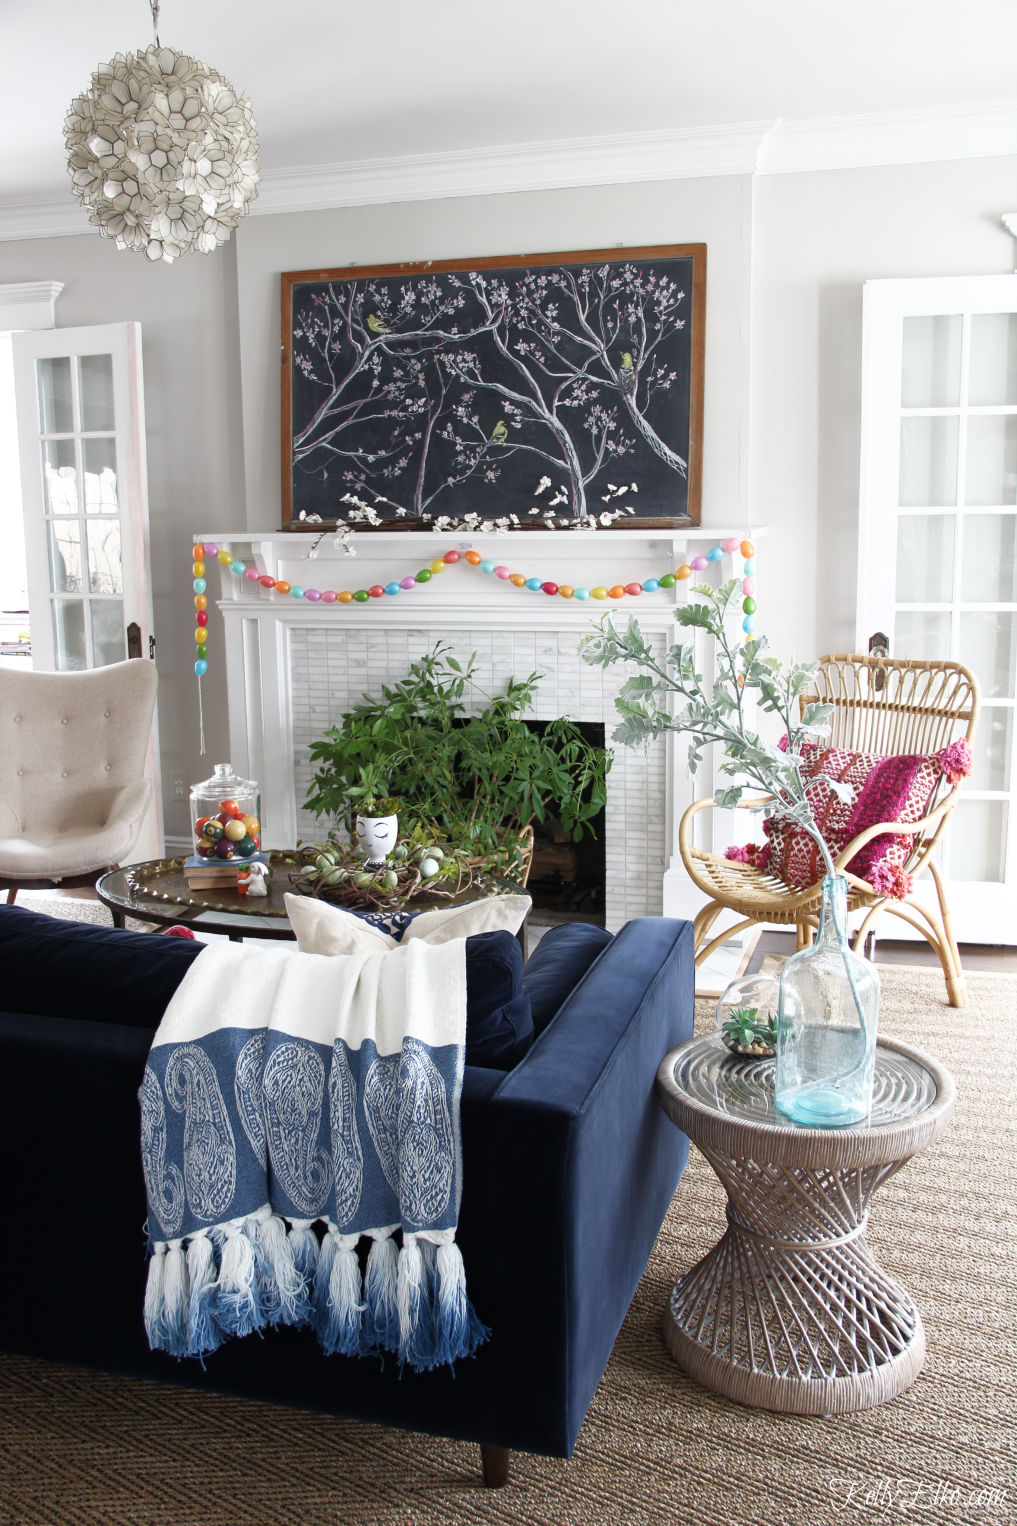 Spring chalkboard mantel - love the original chalk art on the vintage chalkboard and the DIY egg garland kellyelko.com #easter #easterdecor #spring #springdecor #mantel #springmantel #eastereggs #diycrafts #eastercrafts #springcrafts #lighting #plants #rattan #boho #bohodecor